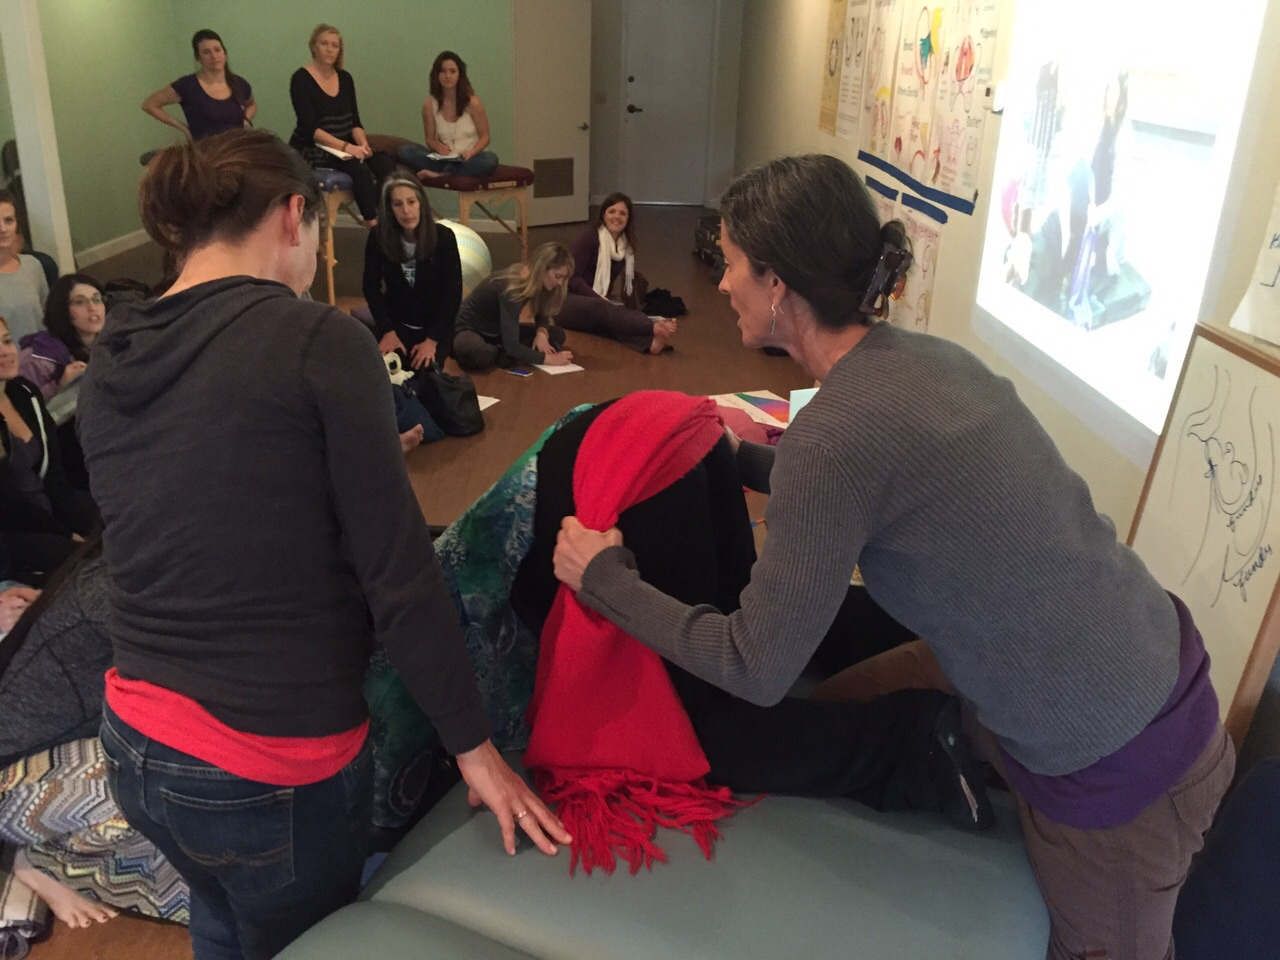 Shake the Apples in Forward-leaning Inversion with a rebozo